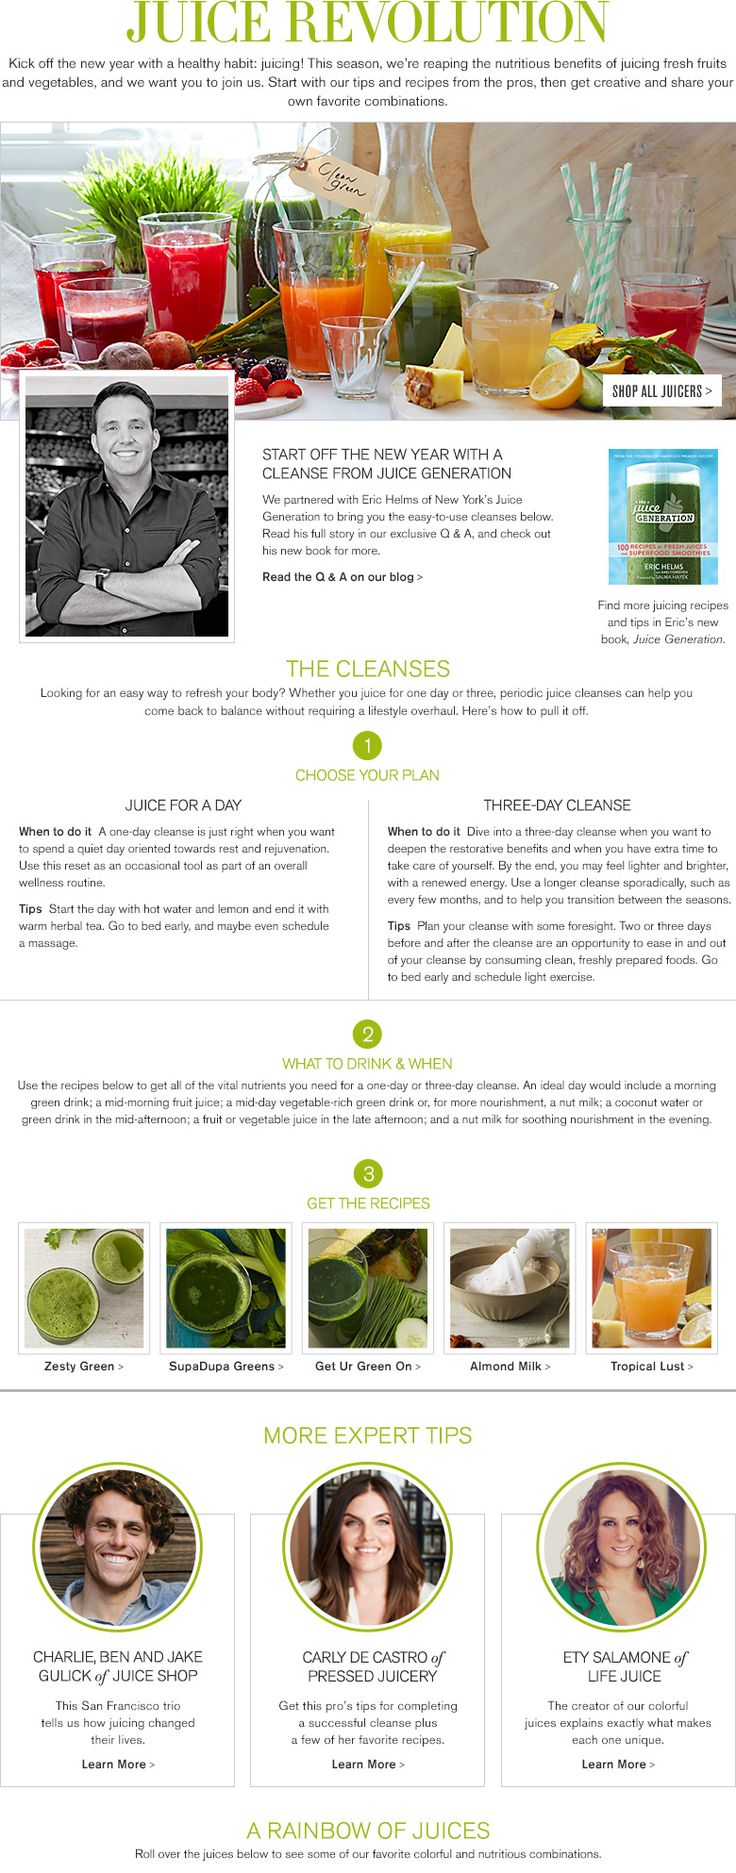 Juicing for joint health